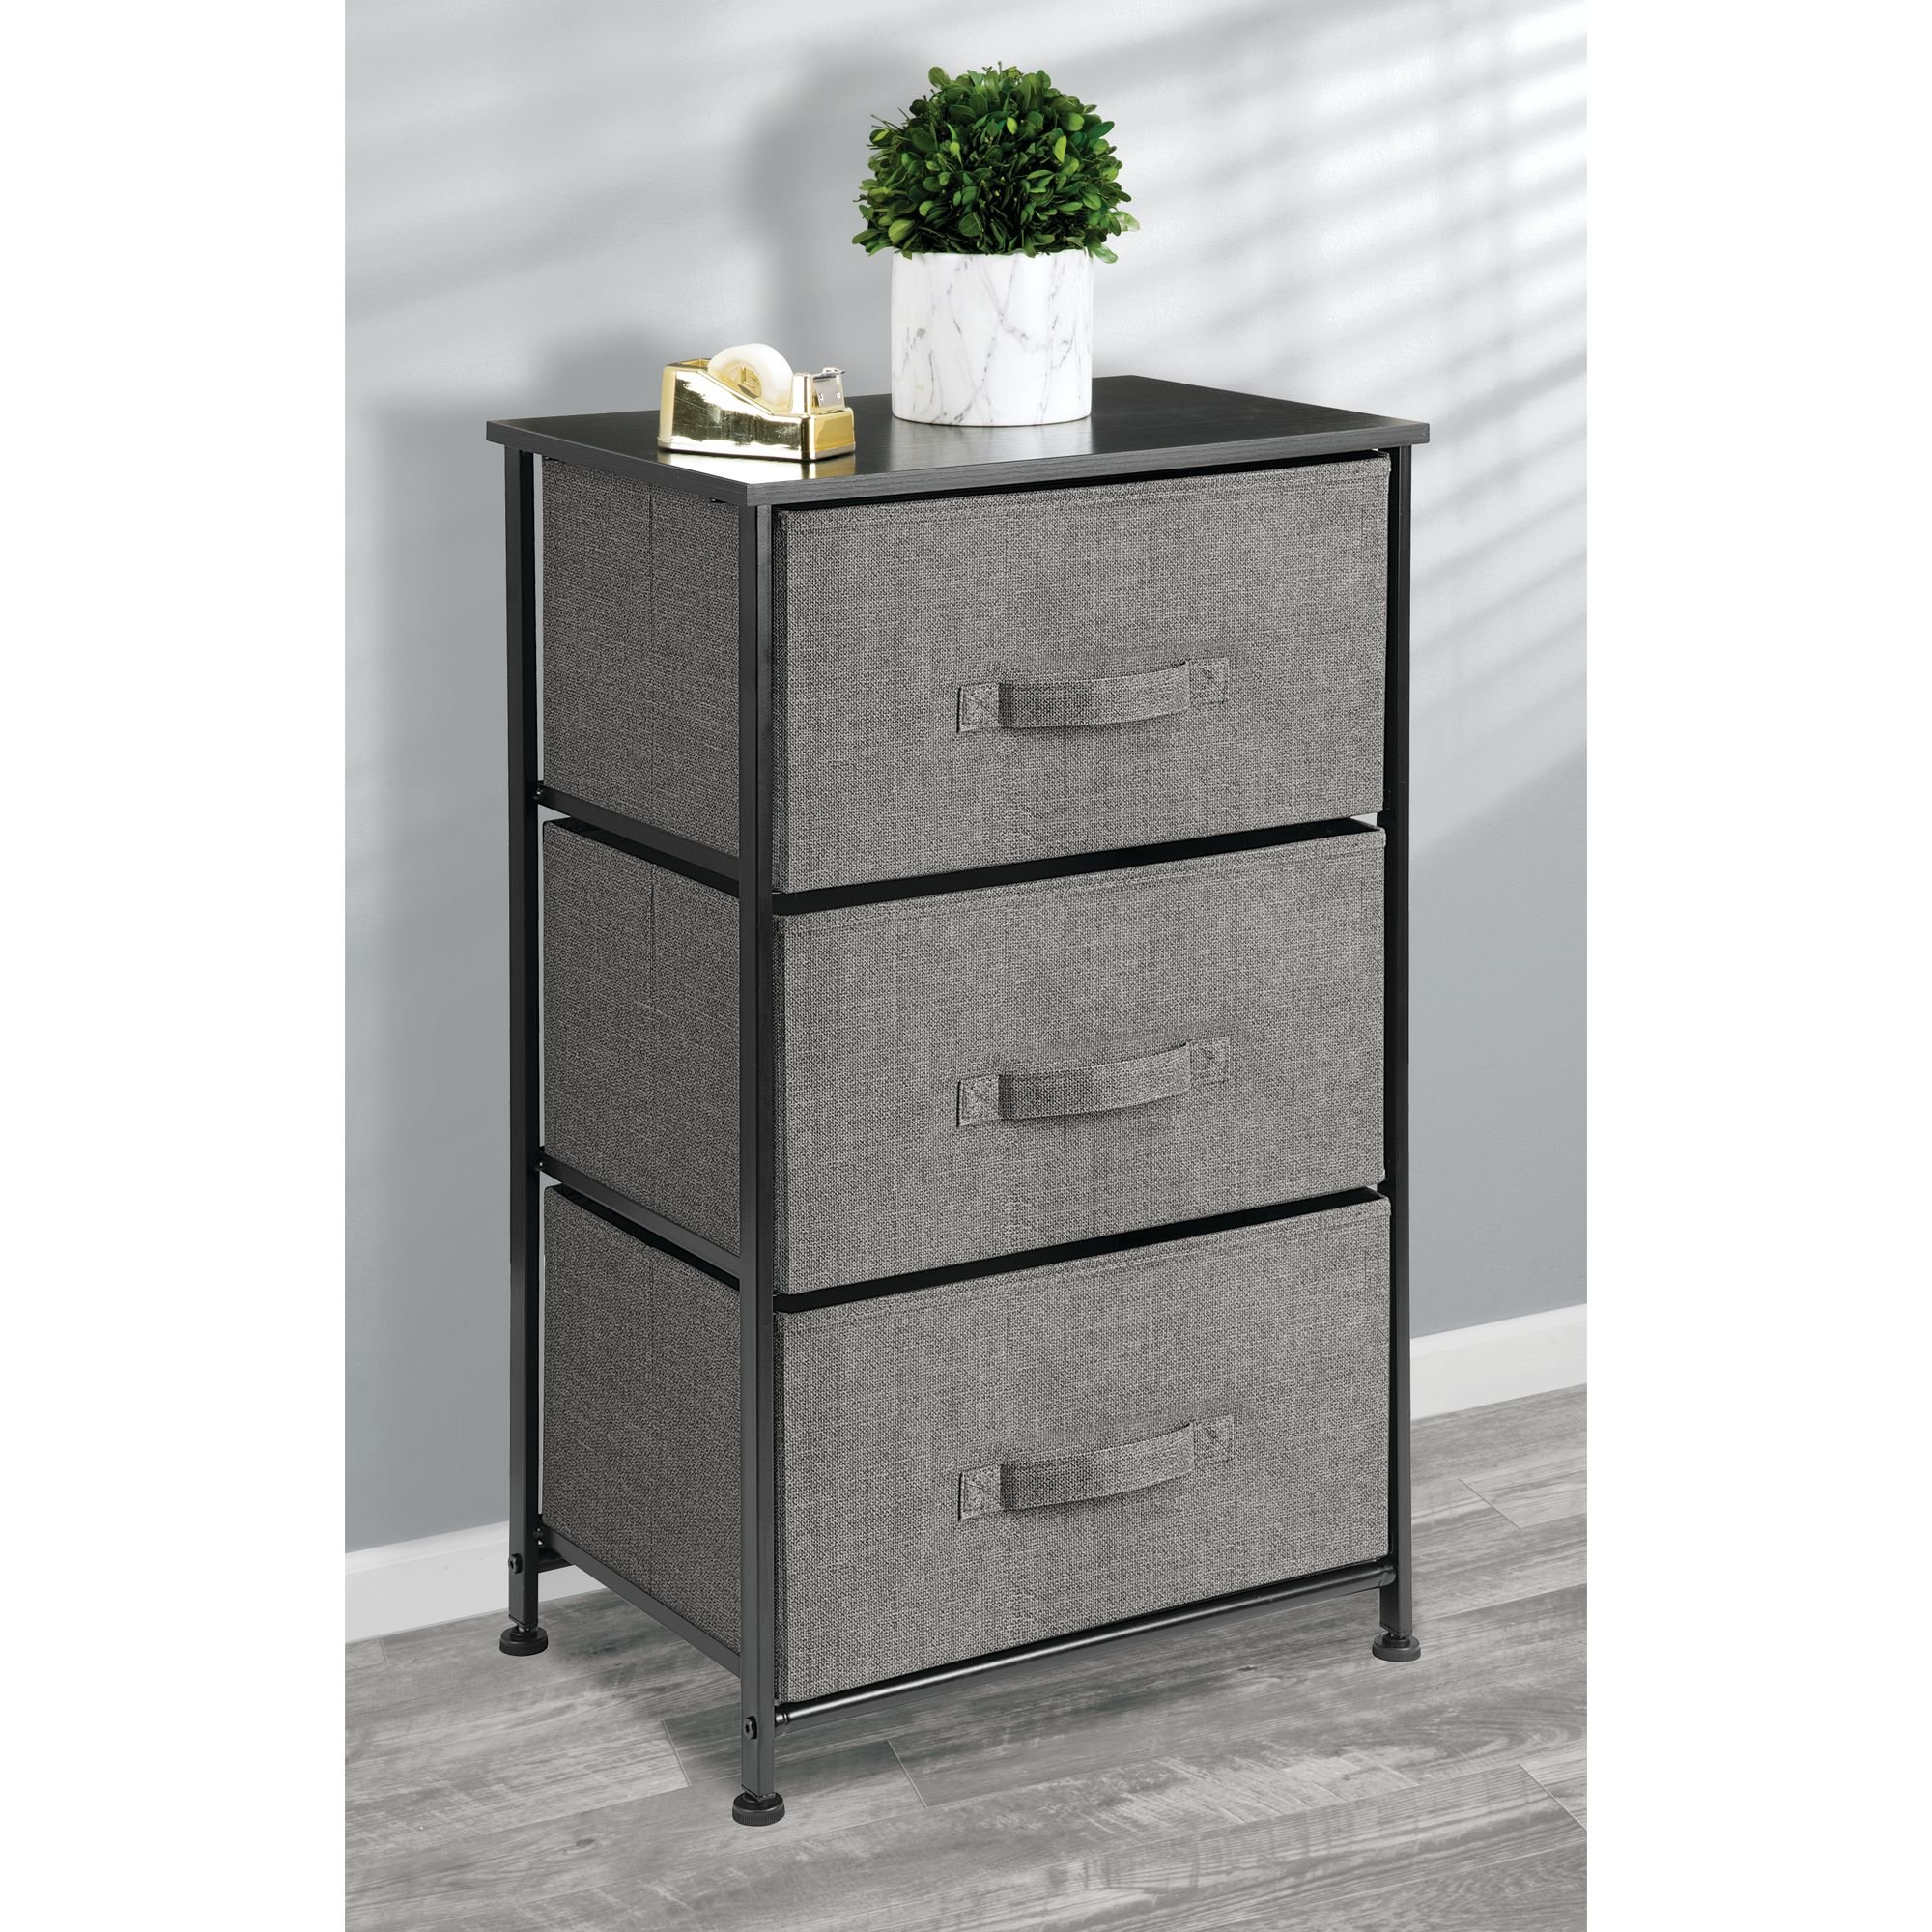 mDesign Vertical Dresser Storage Tower - Sturdy Steel Frame, Wood Top, Easy Pull Fabric Bins - Organizer Unit for Bedroom, Hallway, Entryway, Closets - Textured Print - 3 Drawers, Charcoal Gray/Black by mDesign